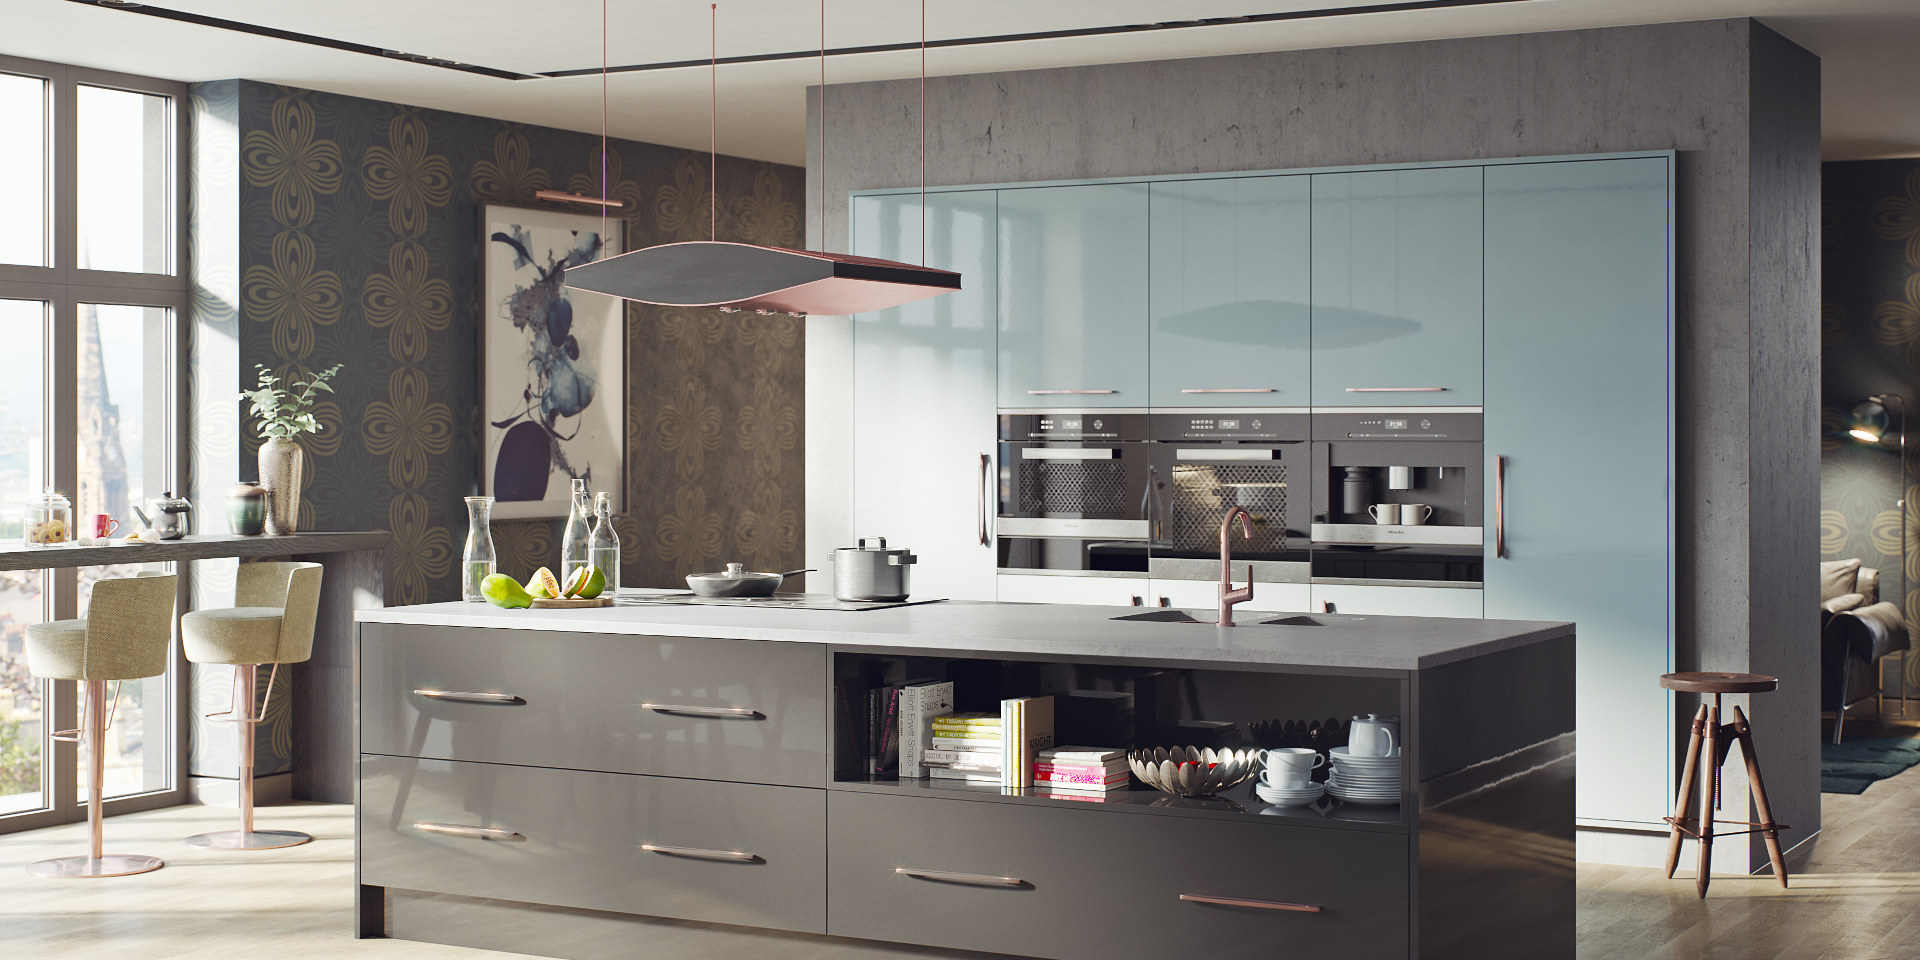 Cherrymore Kitchens Bedrooms More Kitchens Bedrooms Your Way In Donegal Mayo And Galway